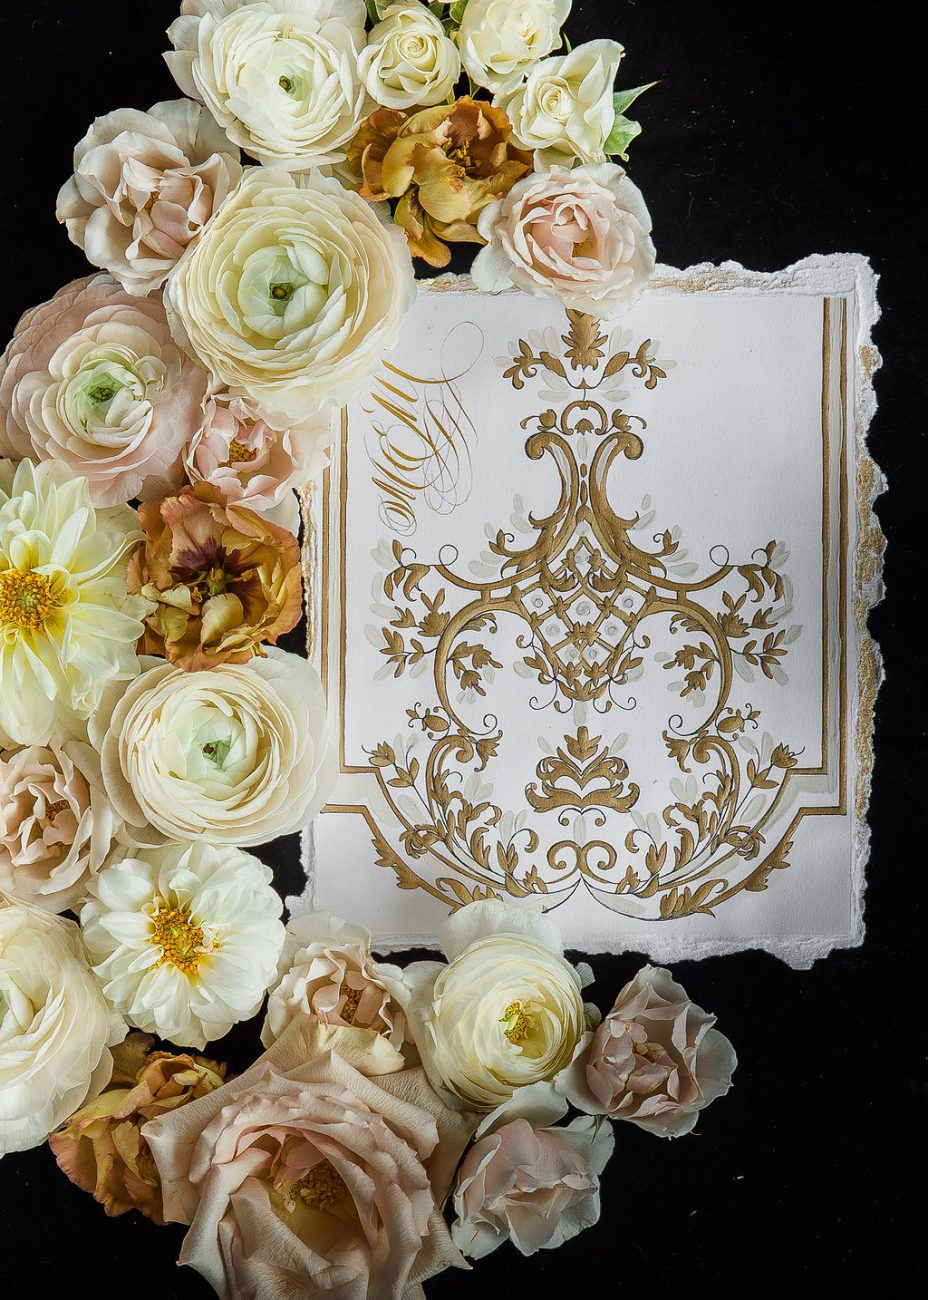 Hand painted white, cream and deep gold wedding menu design with hand torn edges painted in gold